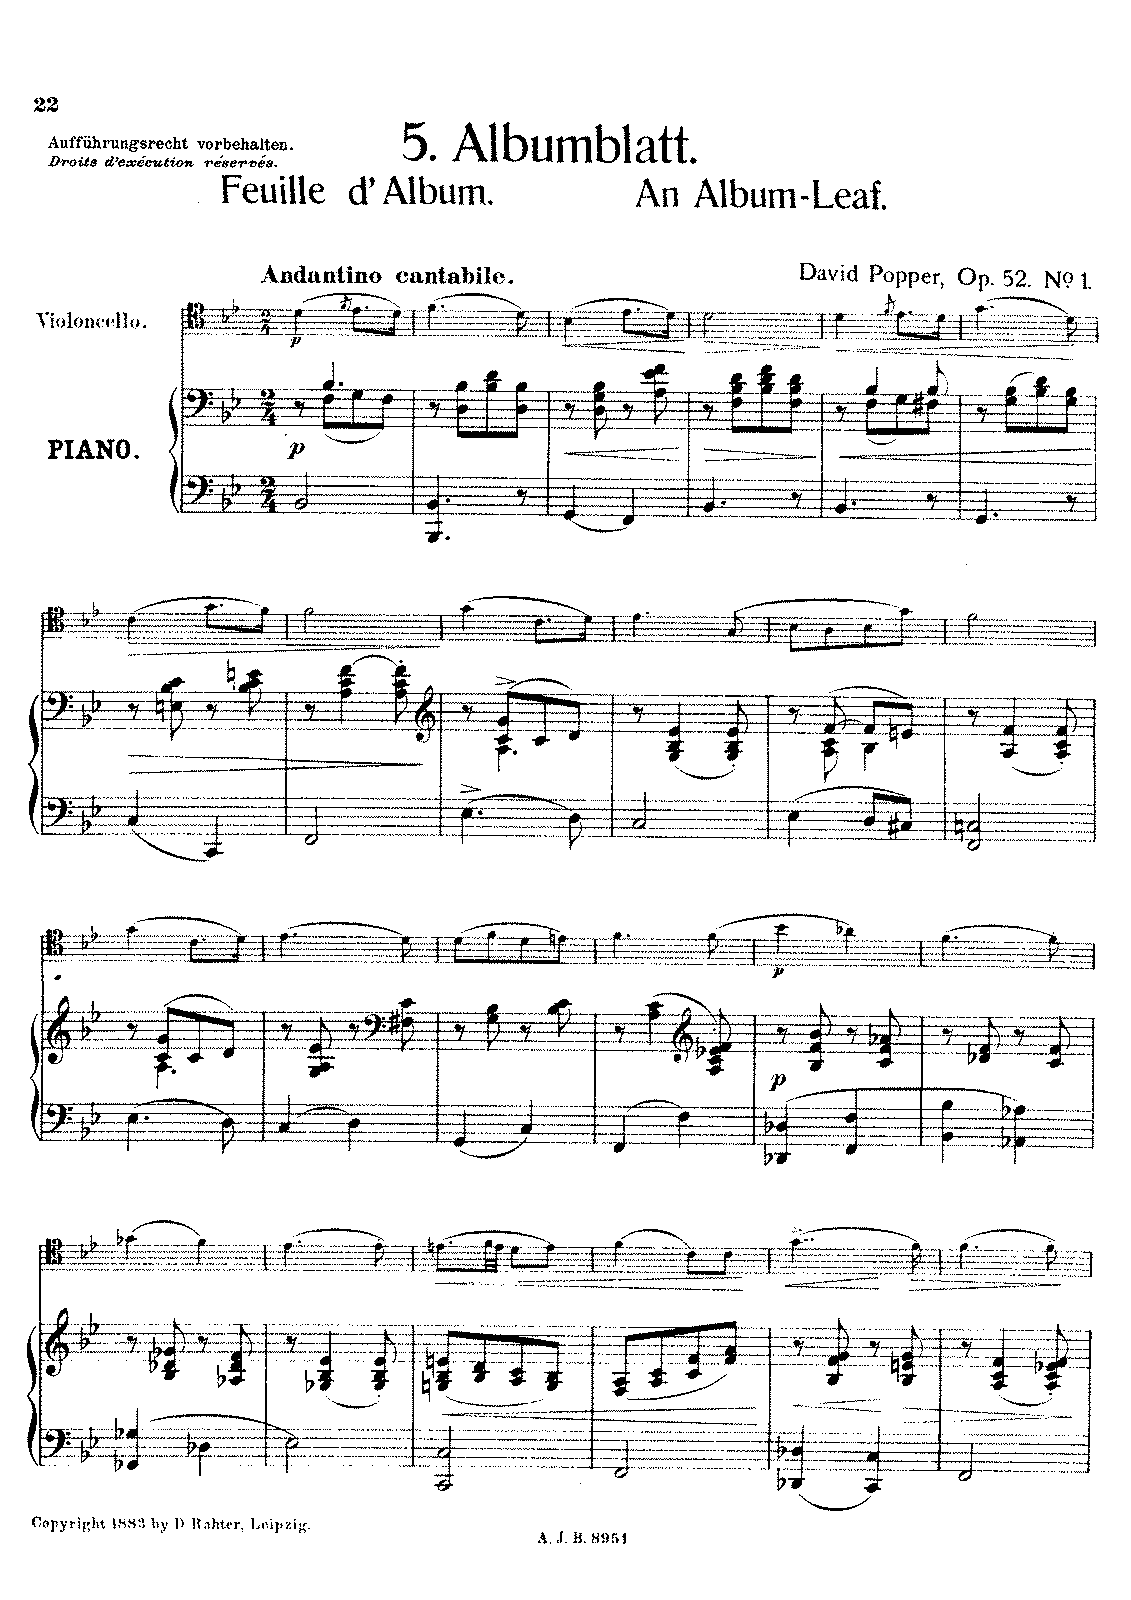 PMLP125200-Popper Albumleaf for Cello and Piano Op52No1.pdf